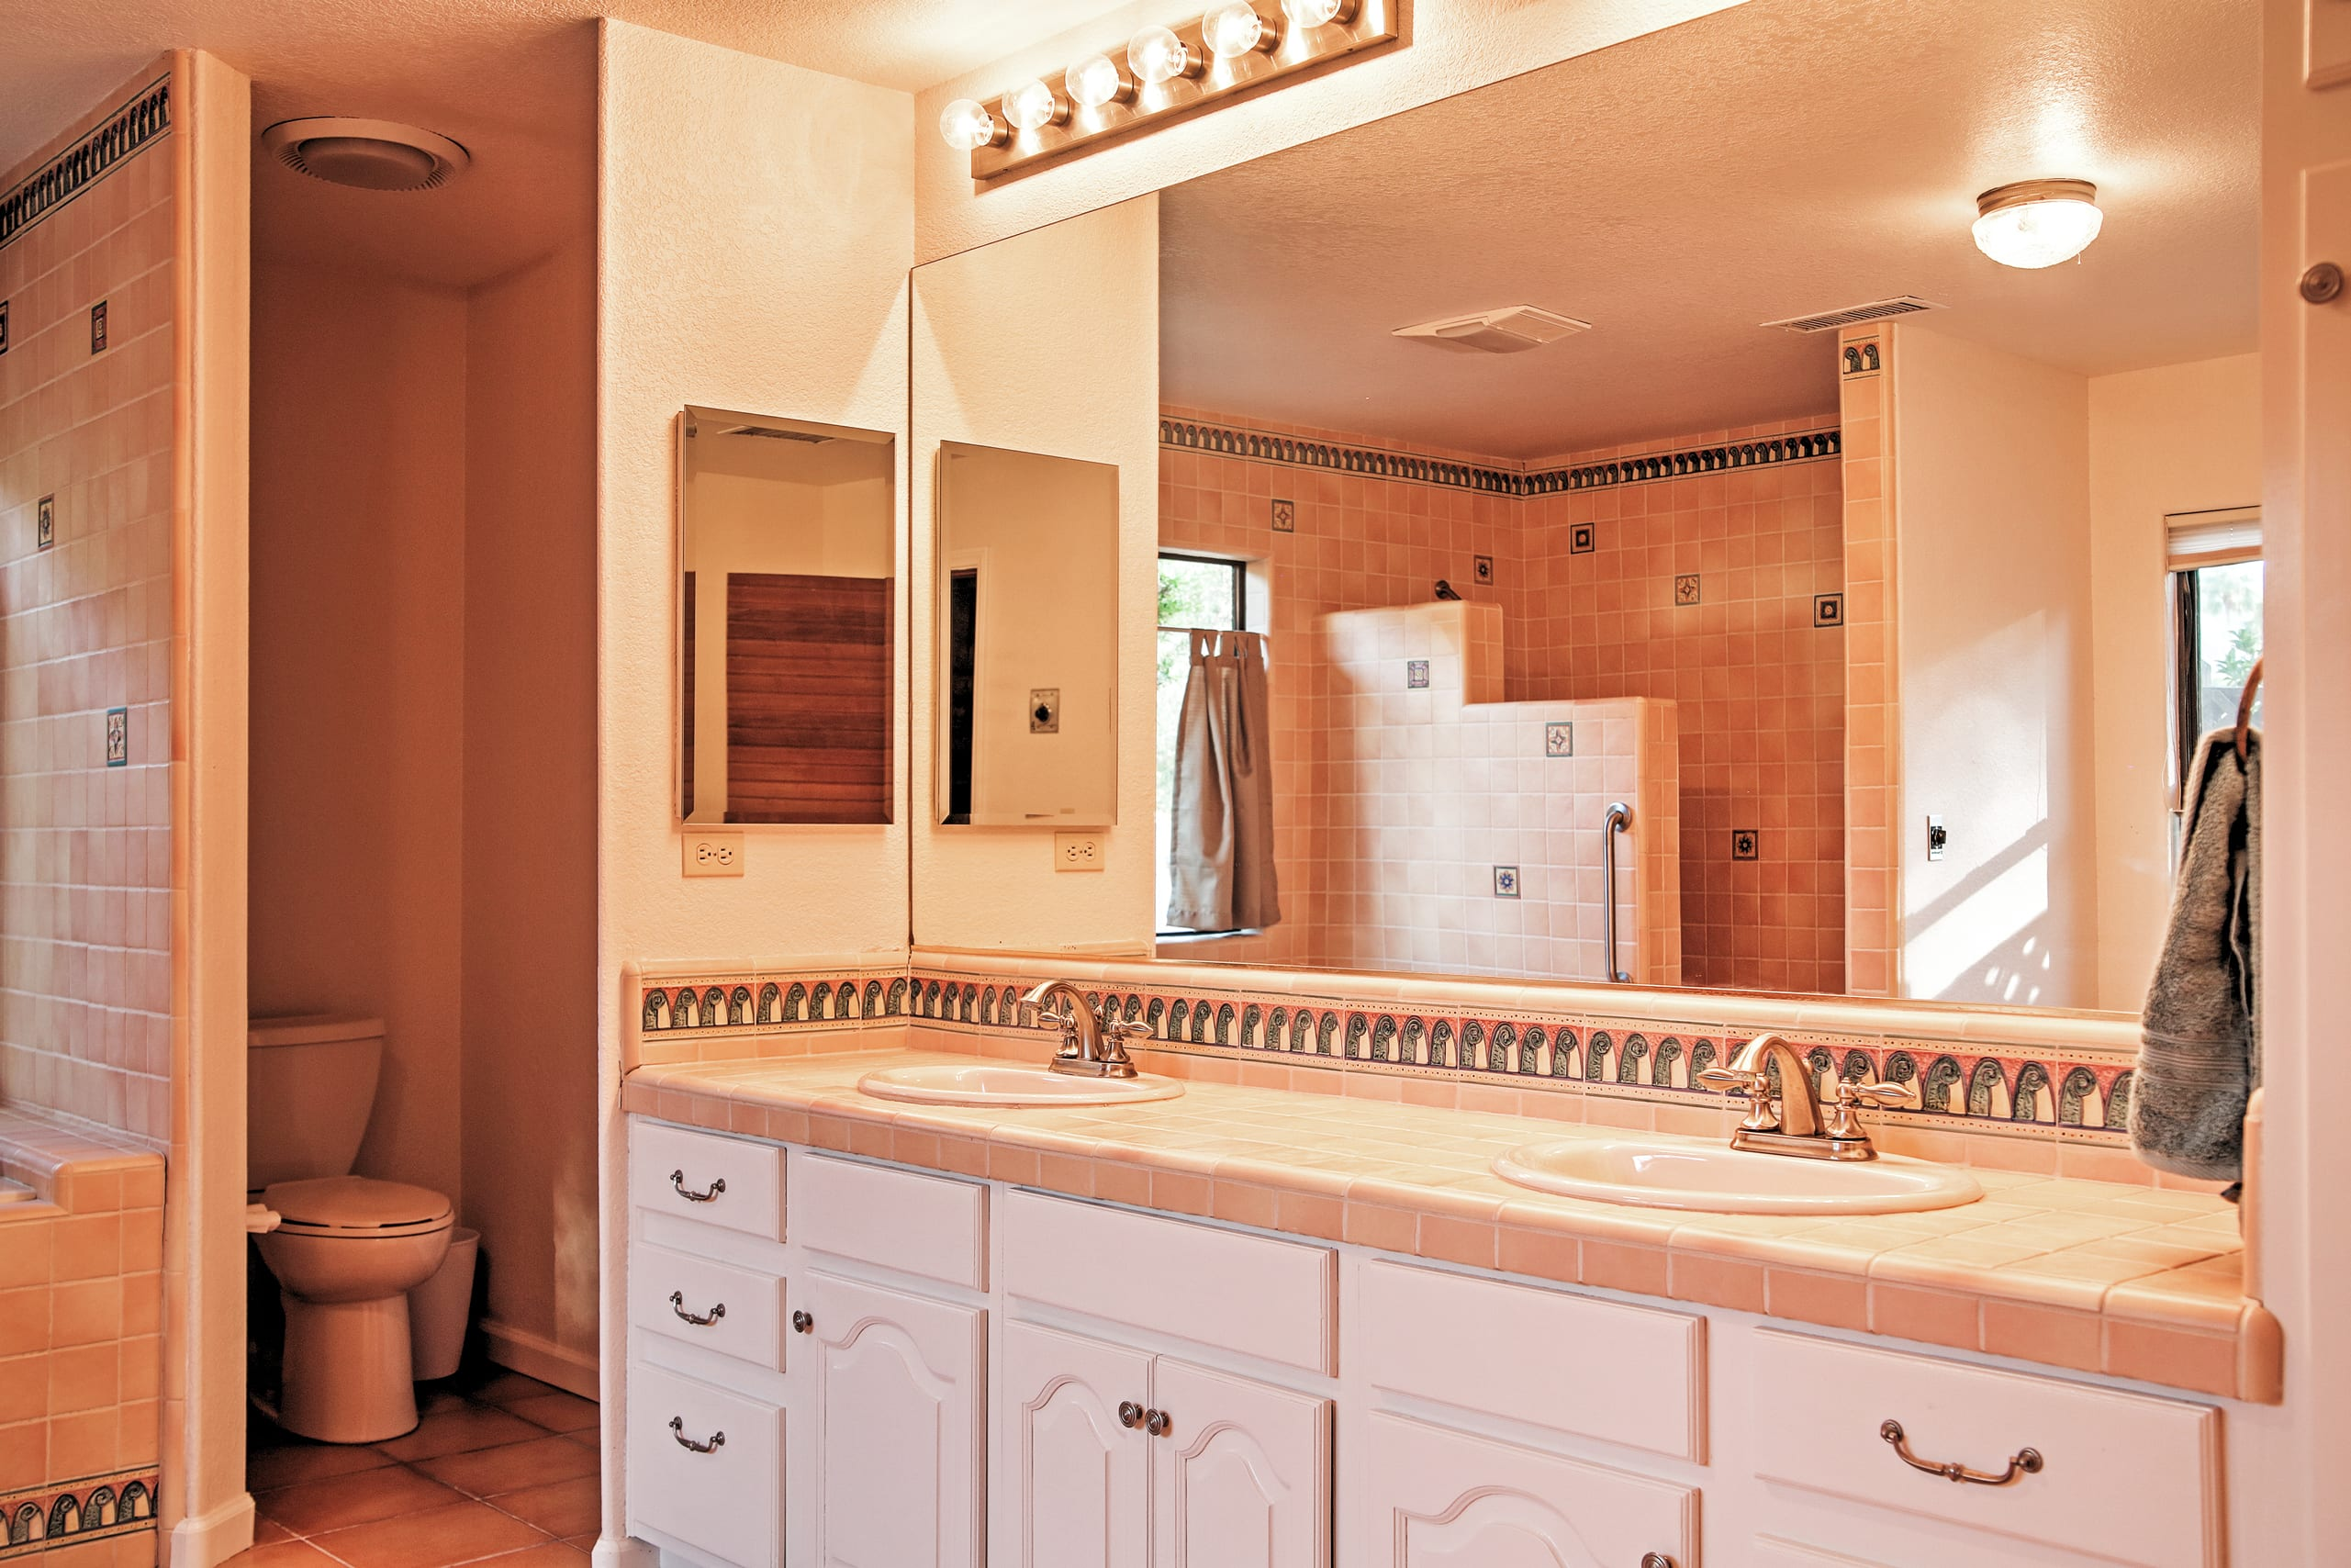 This clean bathroom provides plenty of counter space!